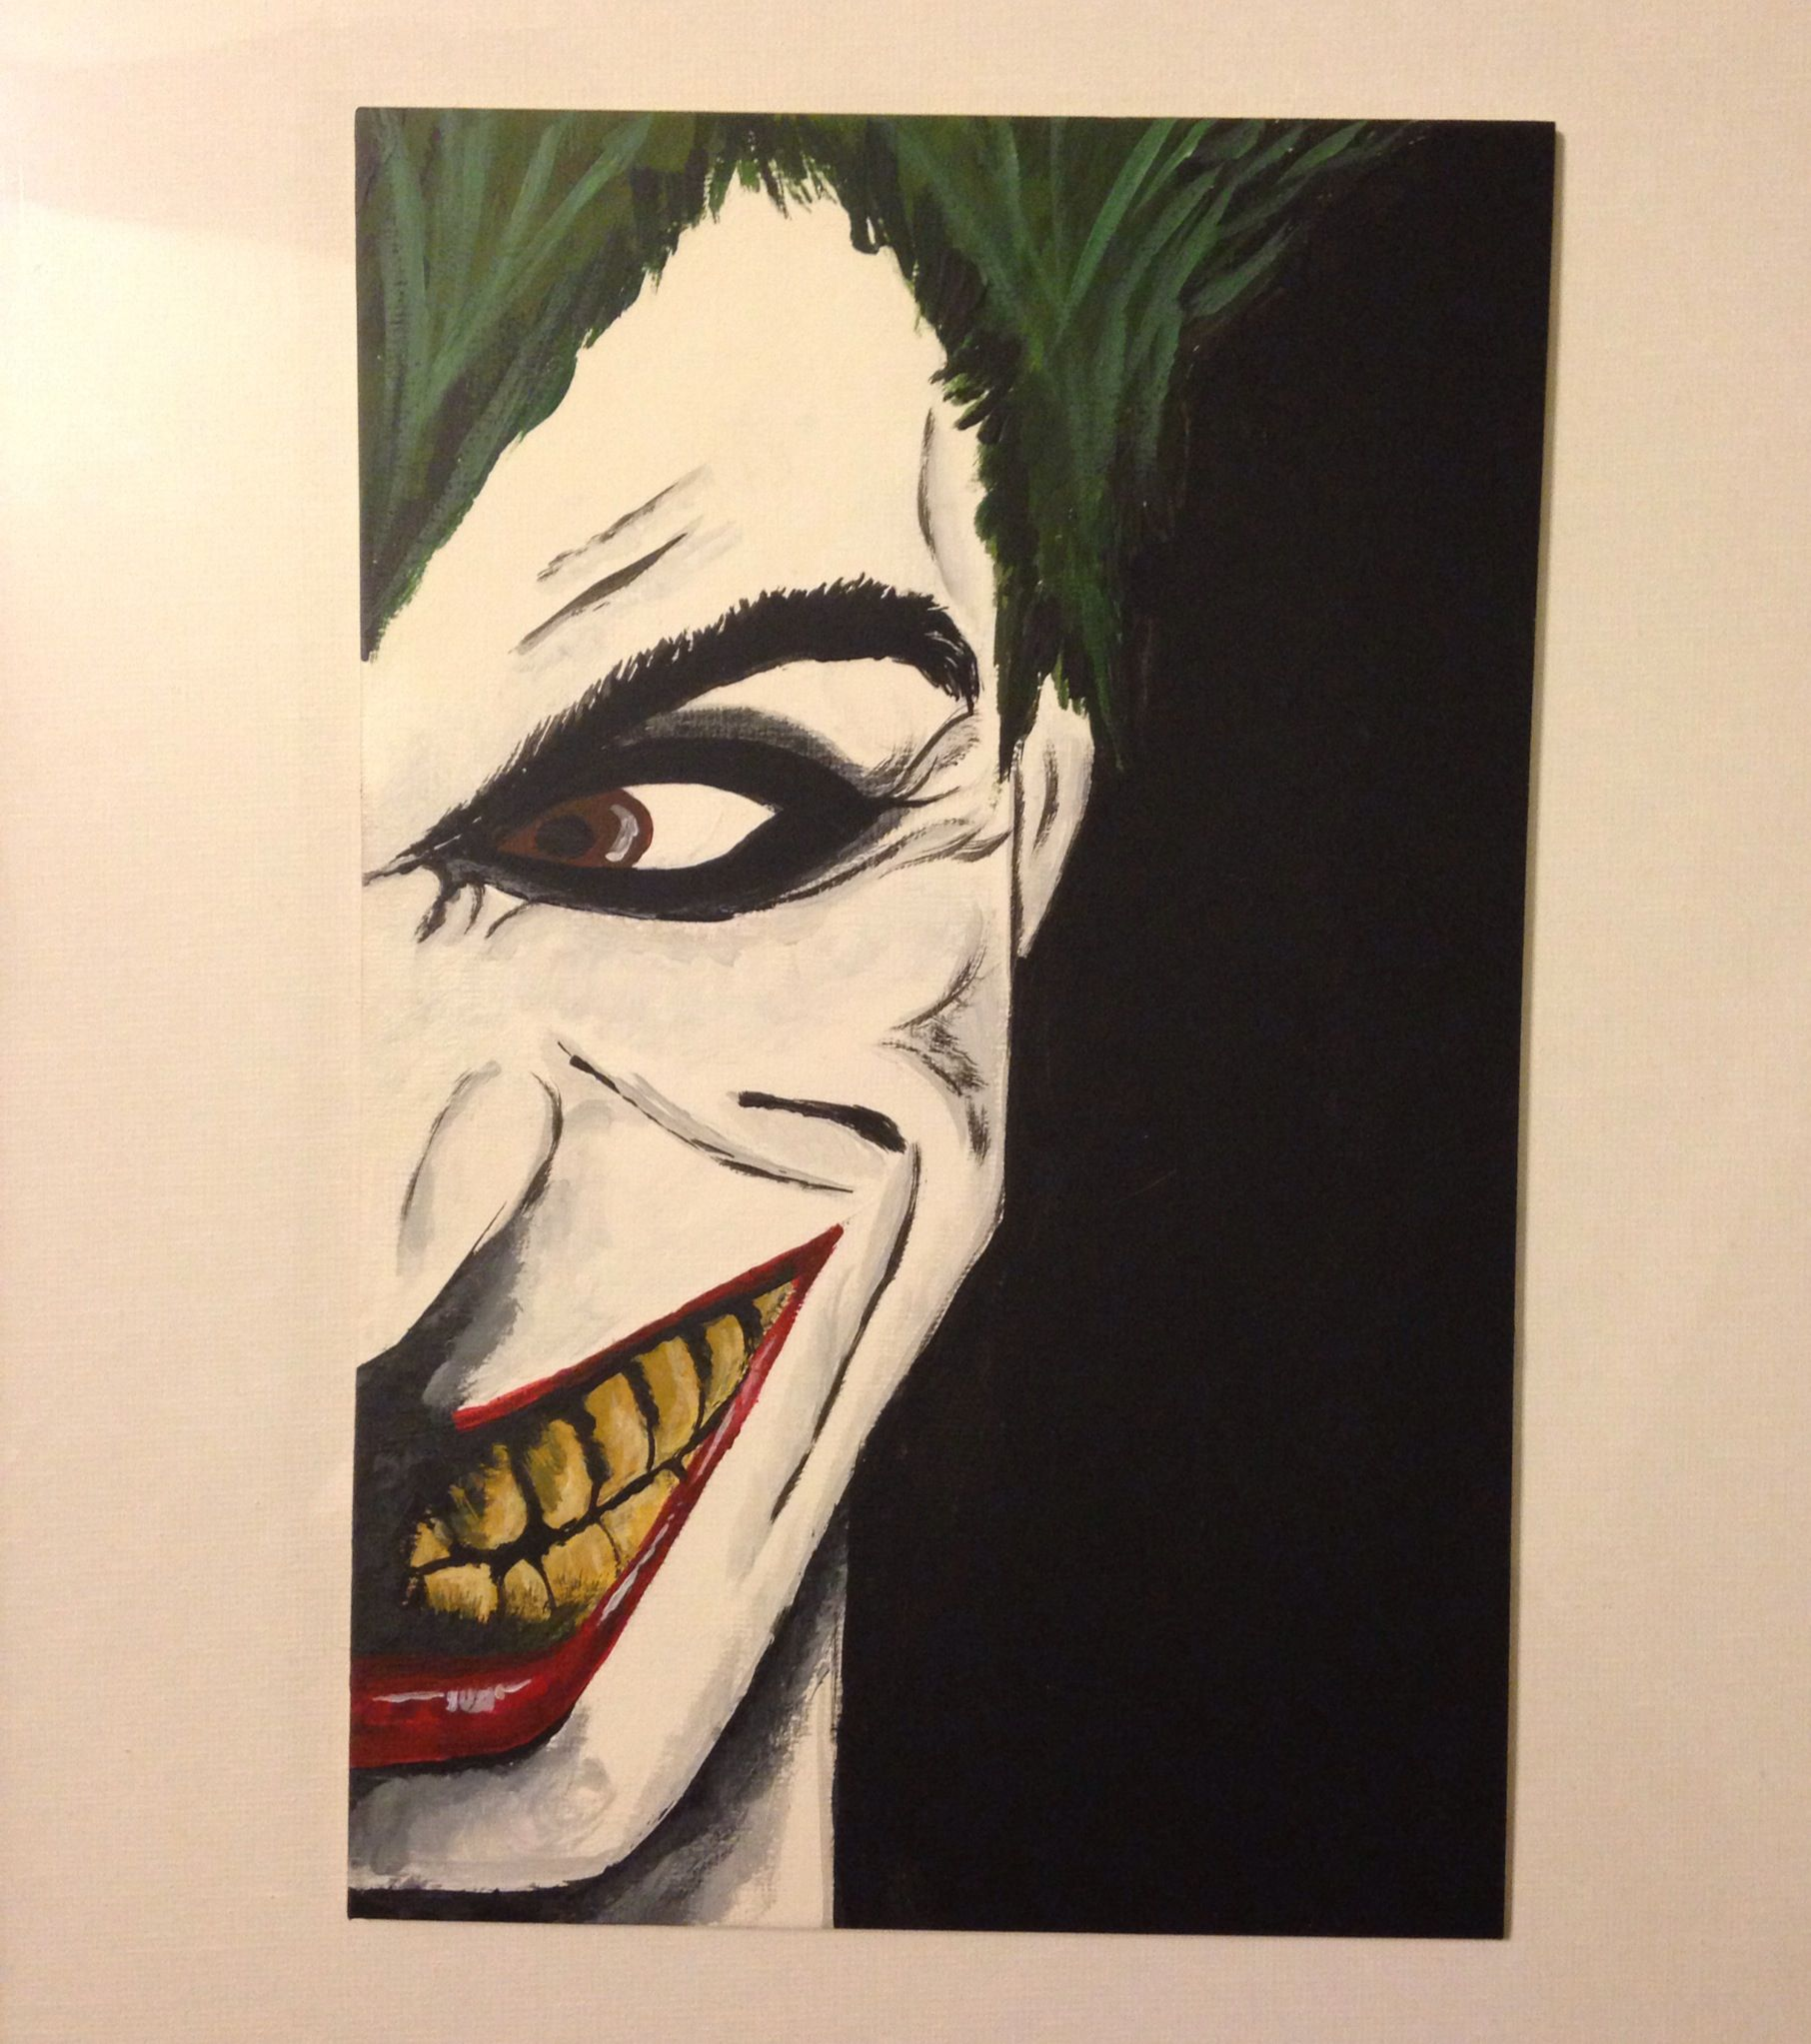 56a59c400 The Joker - I Free hand sketched, then painted with acrylic paints on a  flat canvas